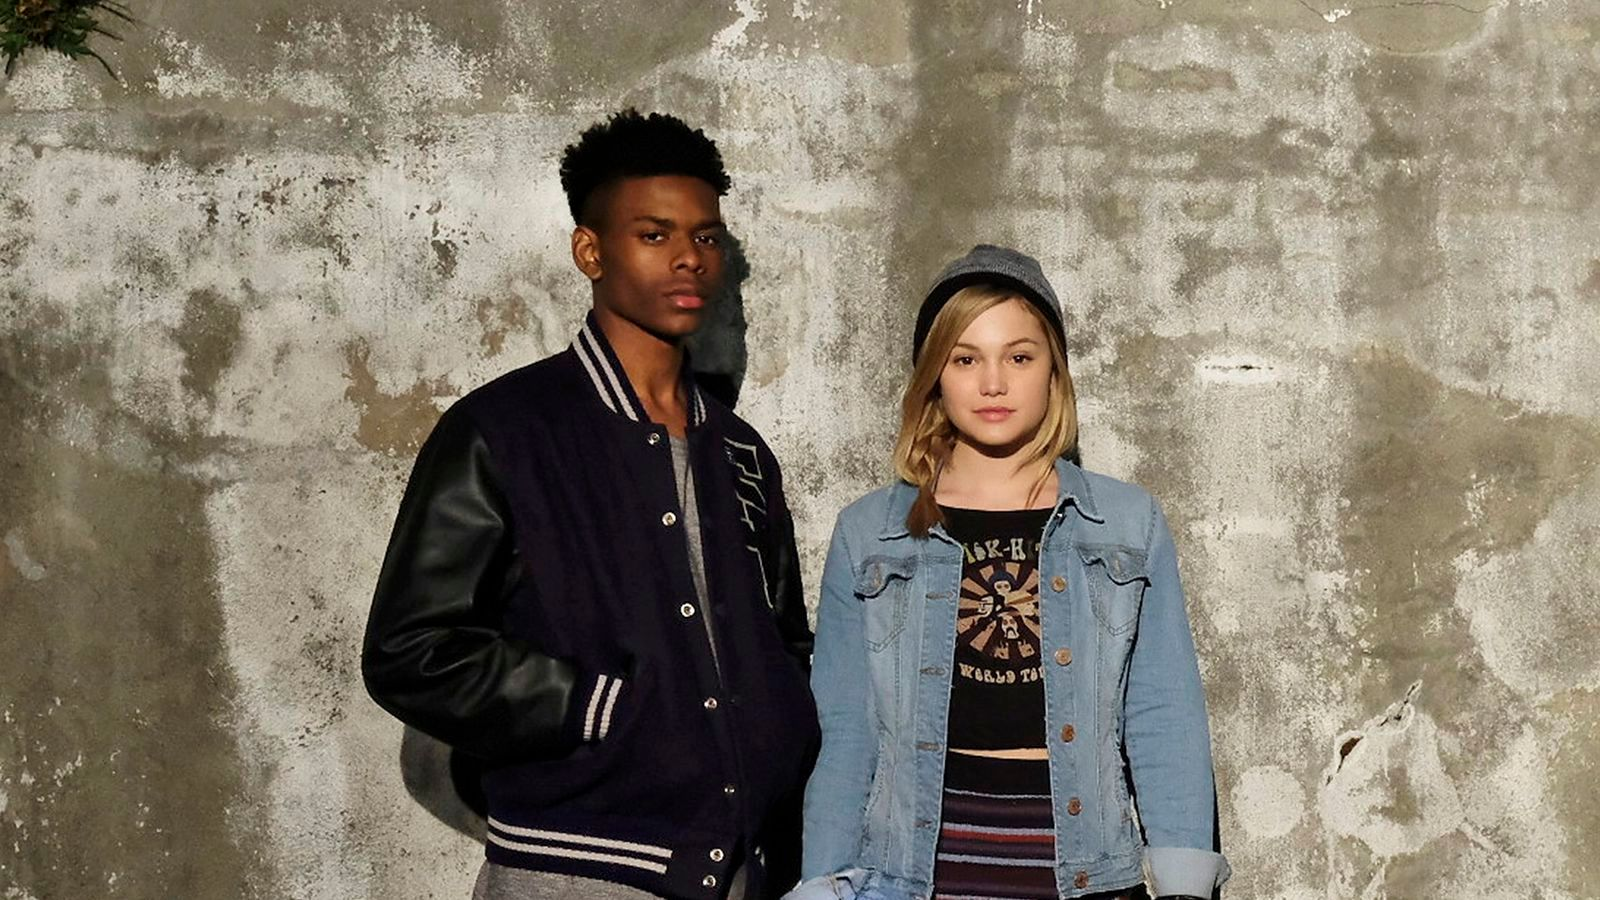 The first trailer for Marvel's Cloak & Dagger is all about romance and teen angst